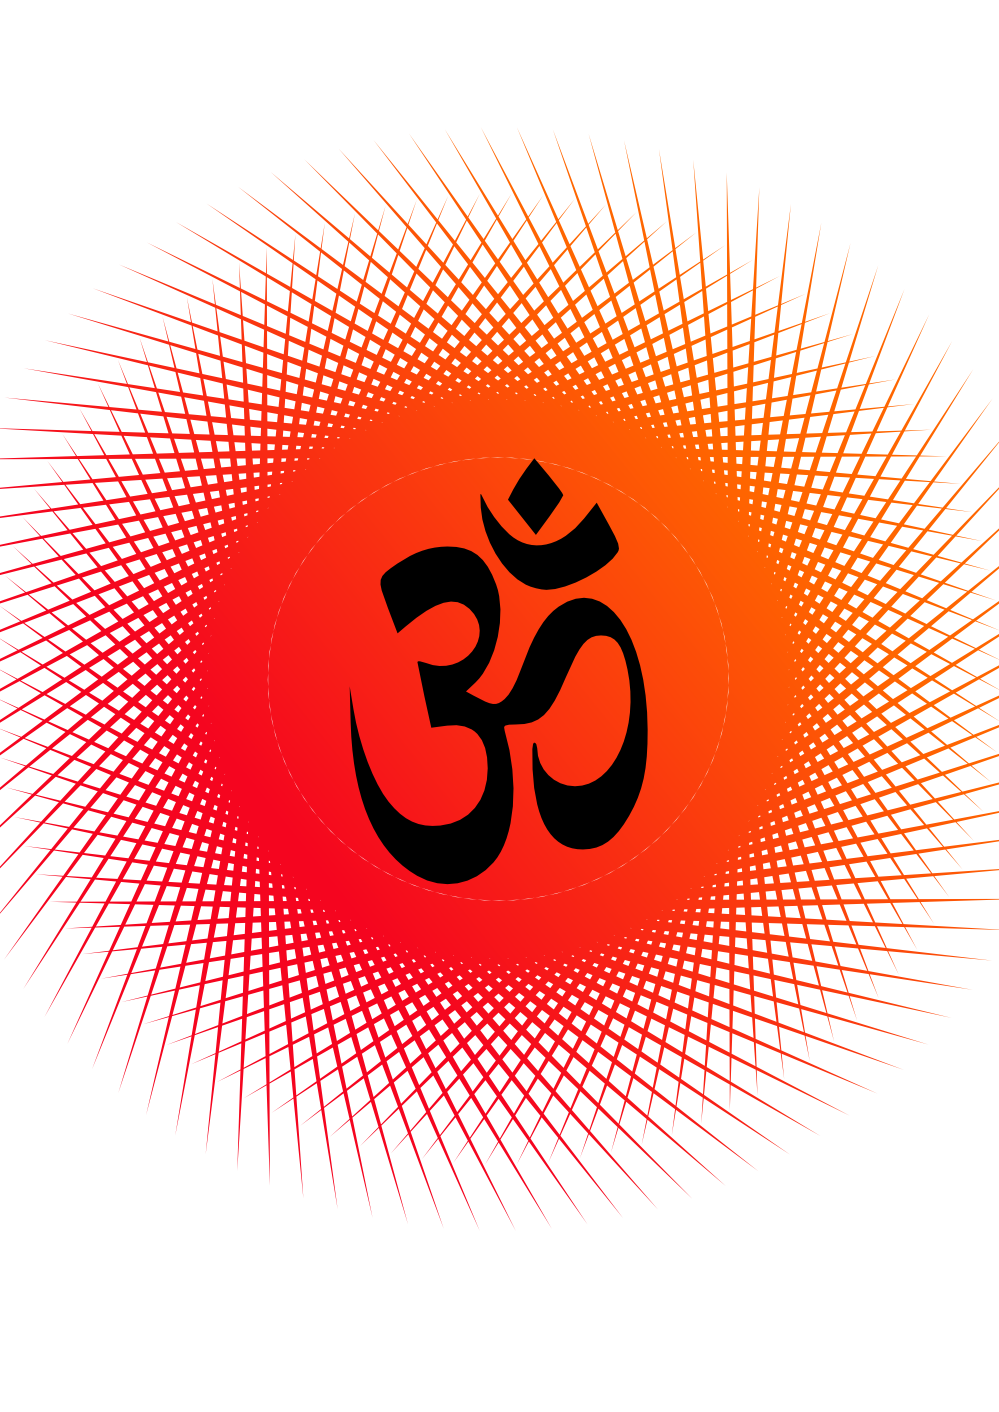 Download om free png photo images and clipart freepngimg om png picture png image biocorpaavc Gallery